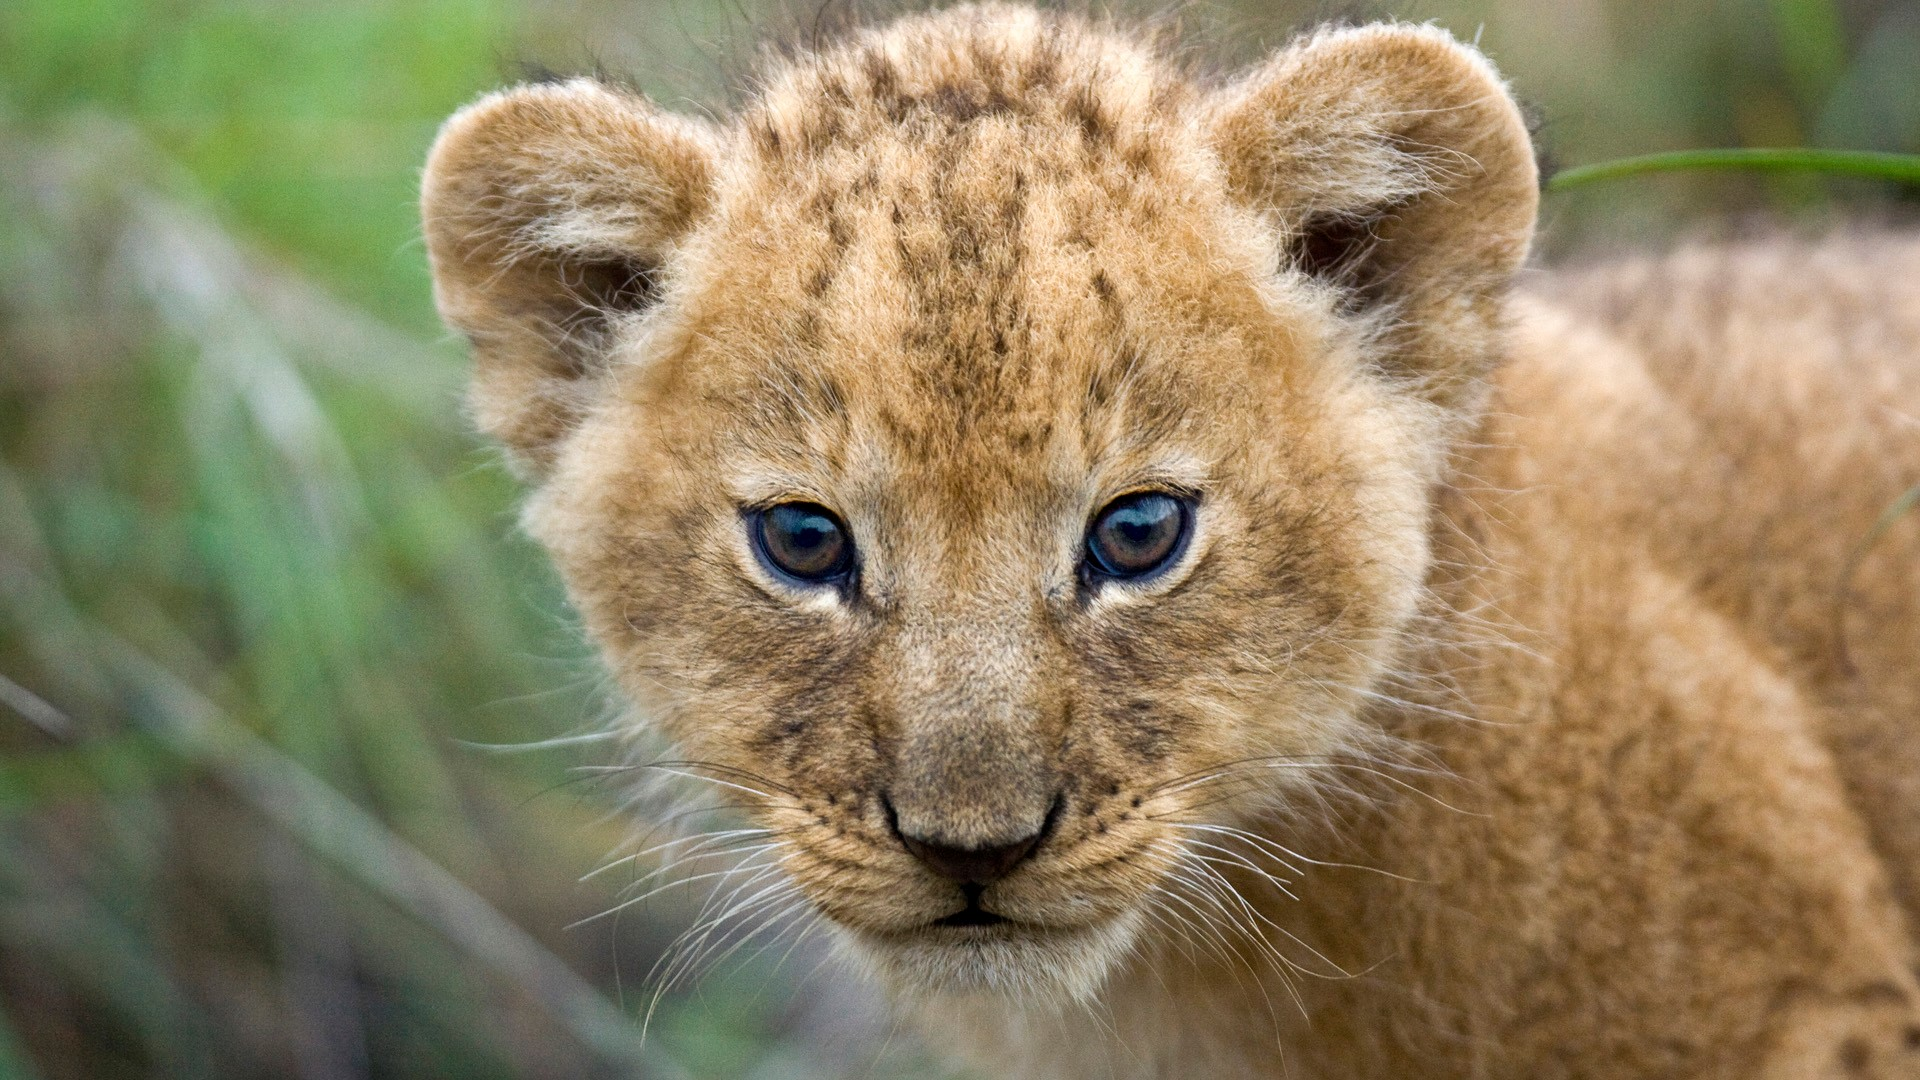 Beautiful Cute Lion Cub Closeup Face HD Wallpapers HD Wallpapers 1920x1080